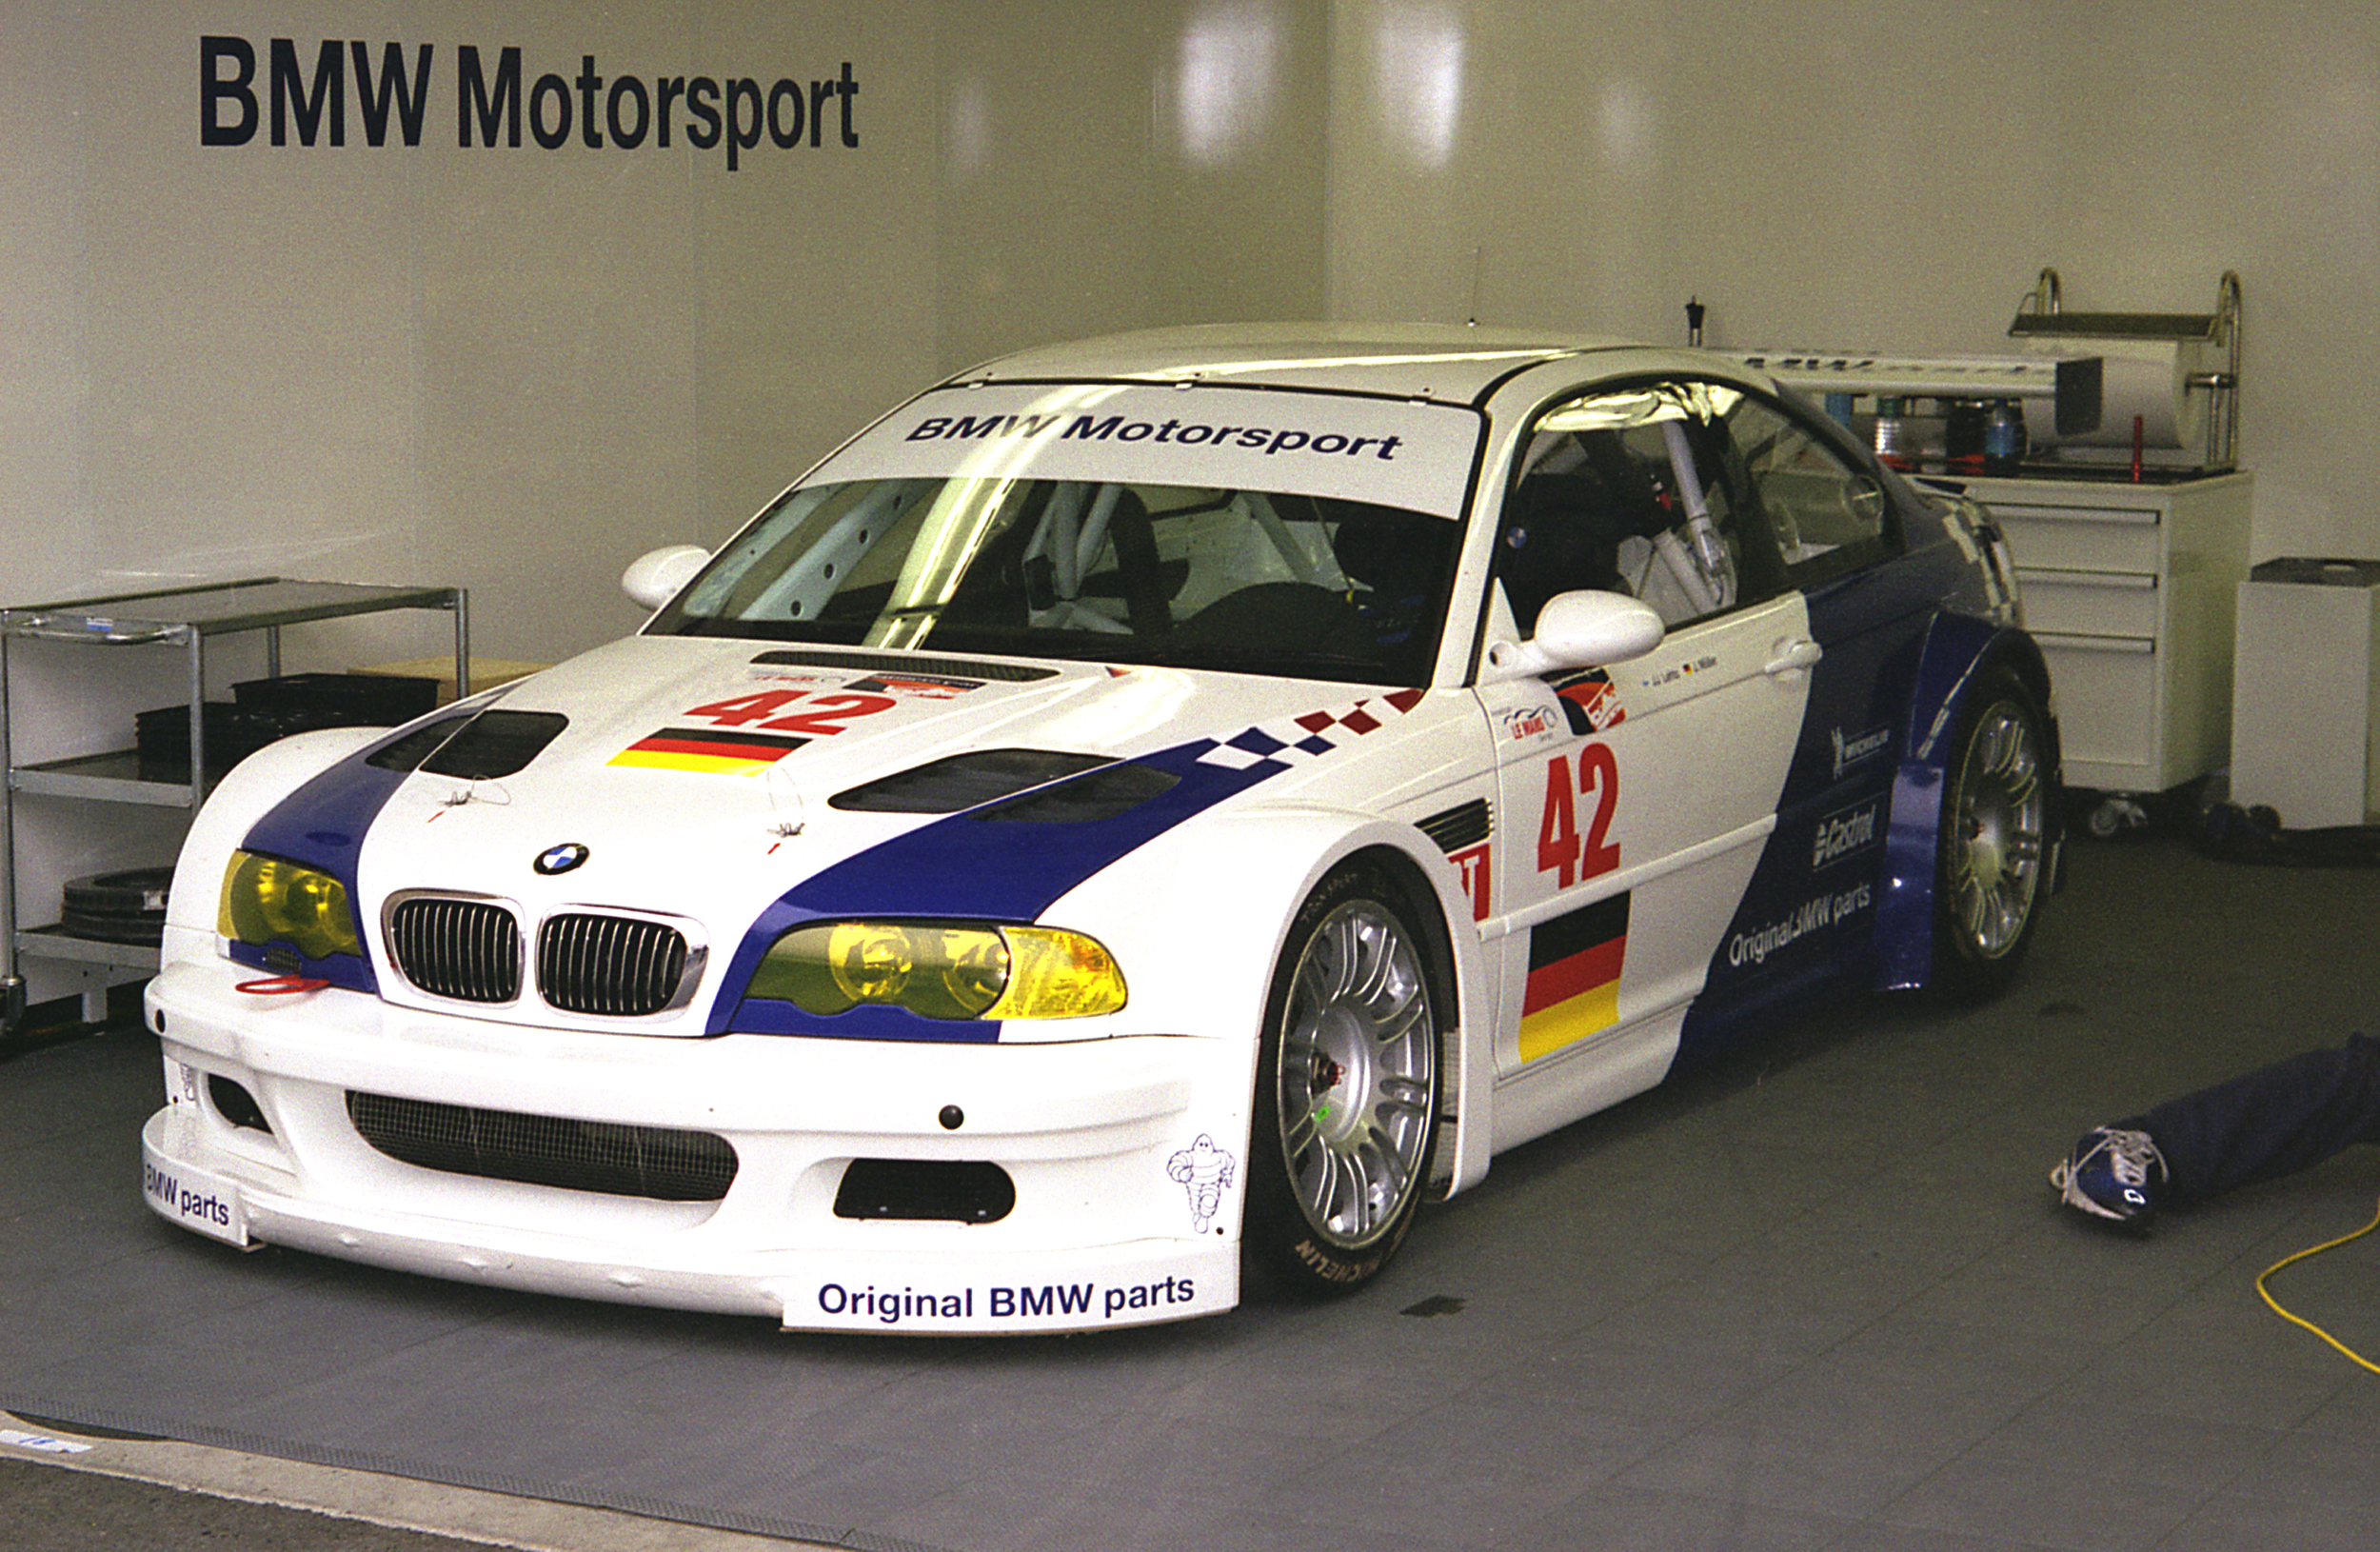 BMW M3 Schnitzer Factory Car in Garage with Leg and Shoe.jpg